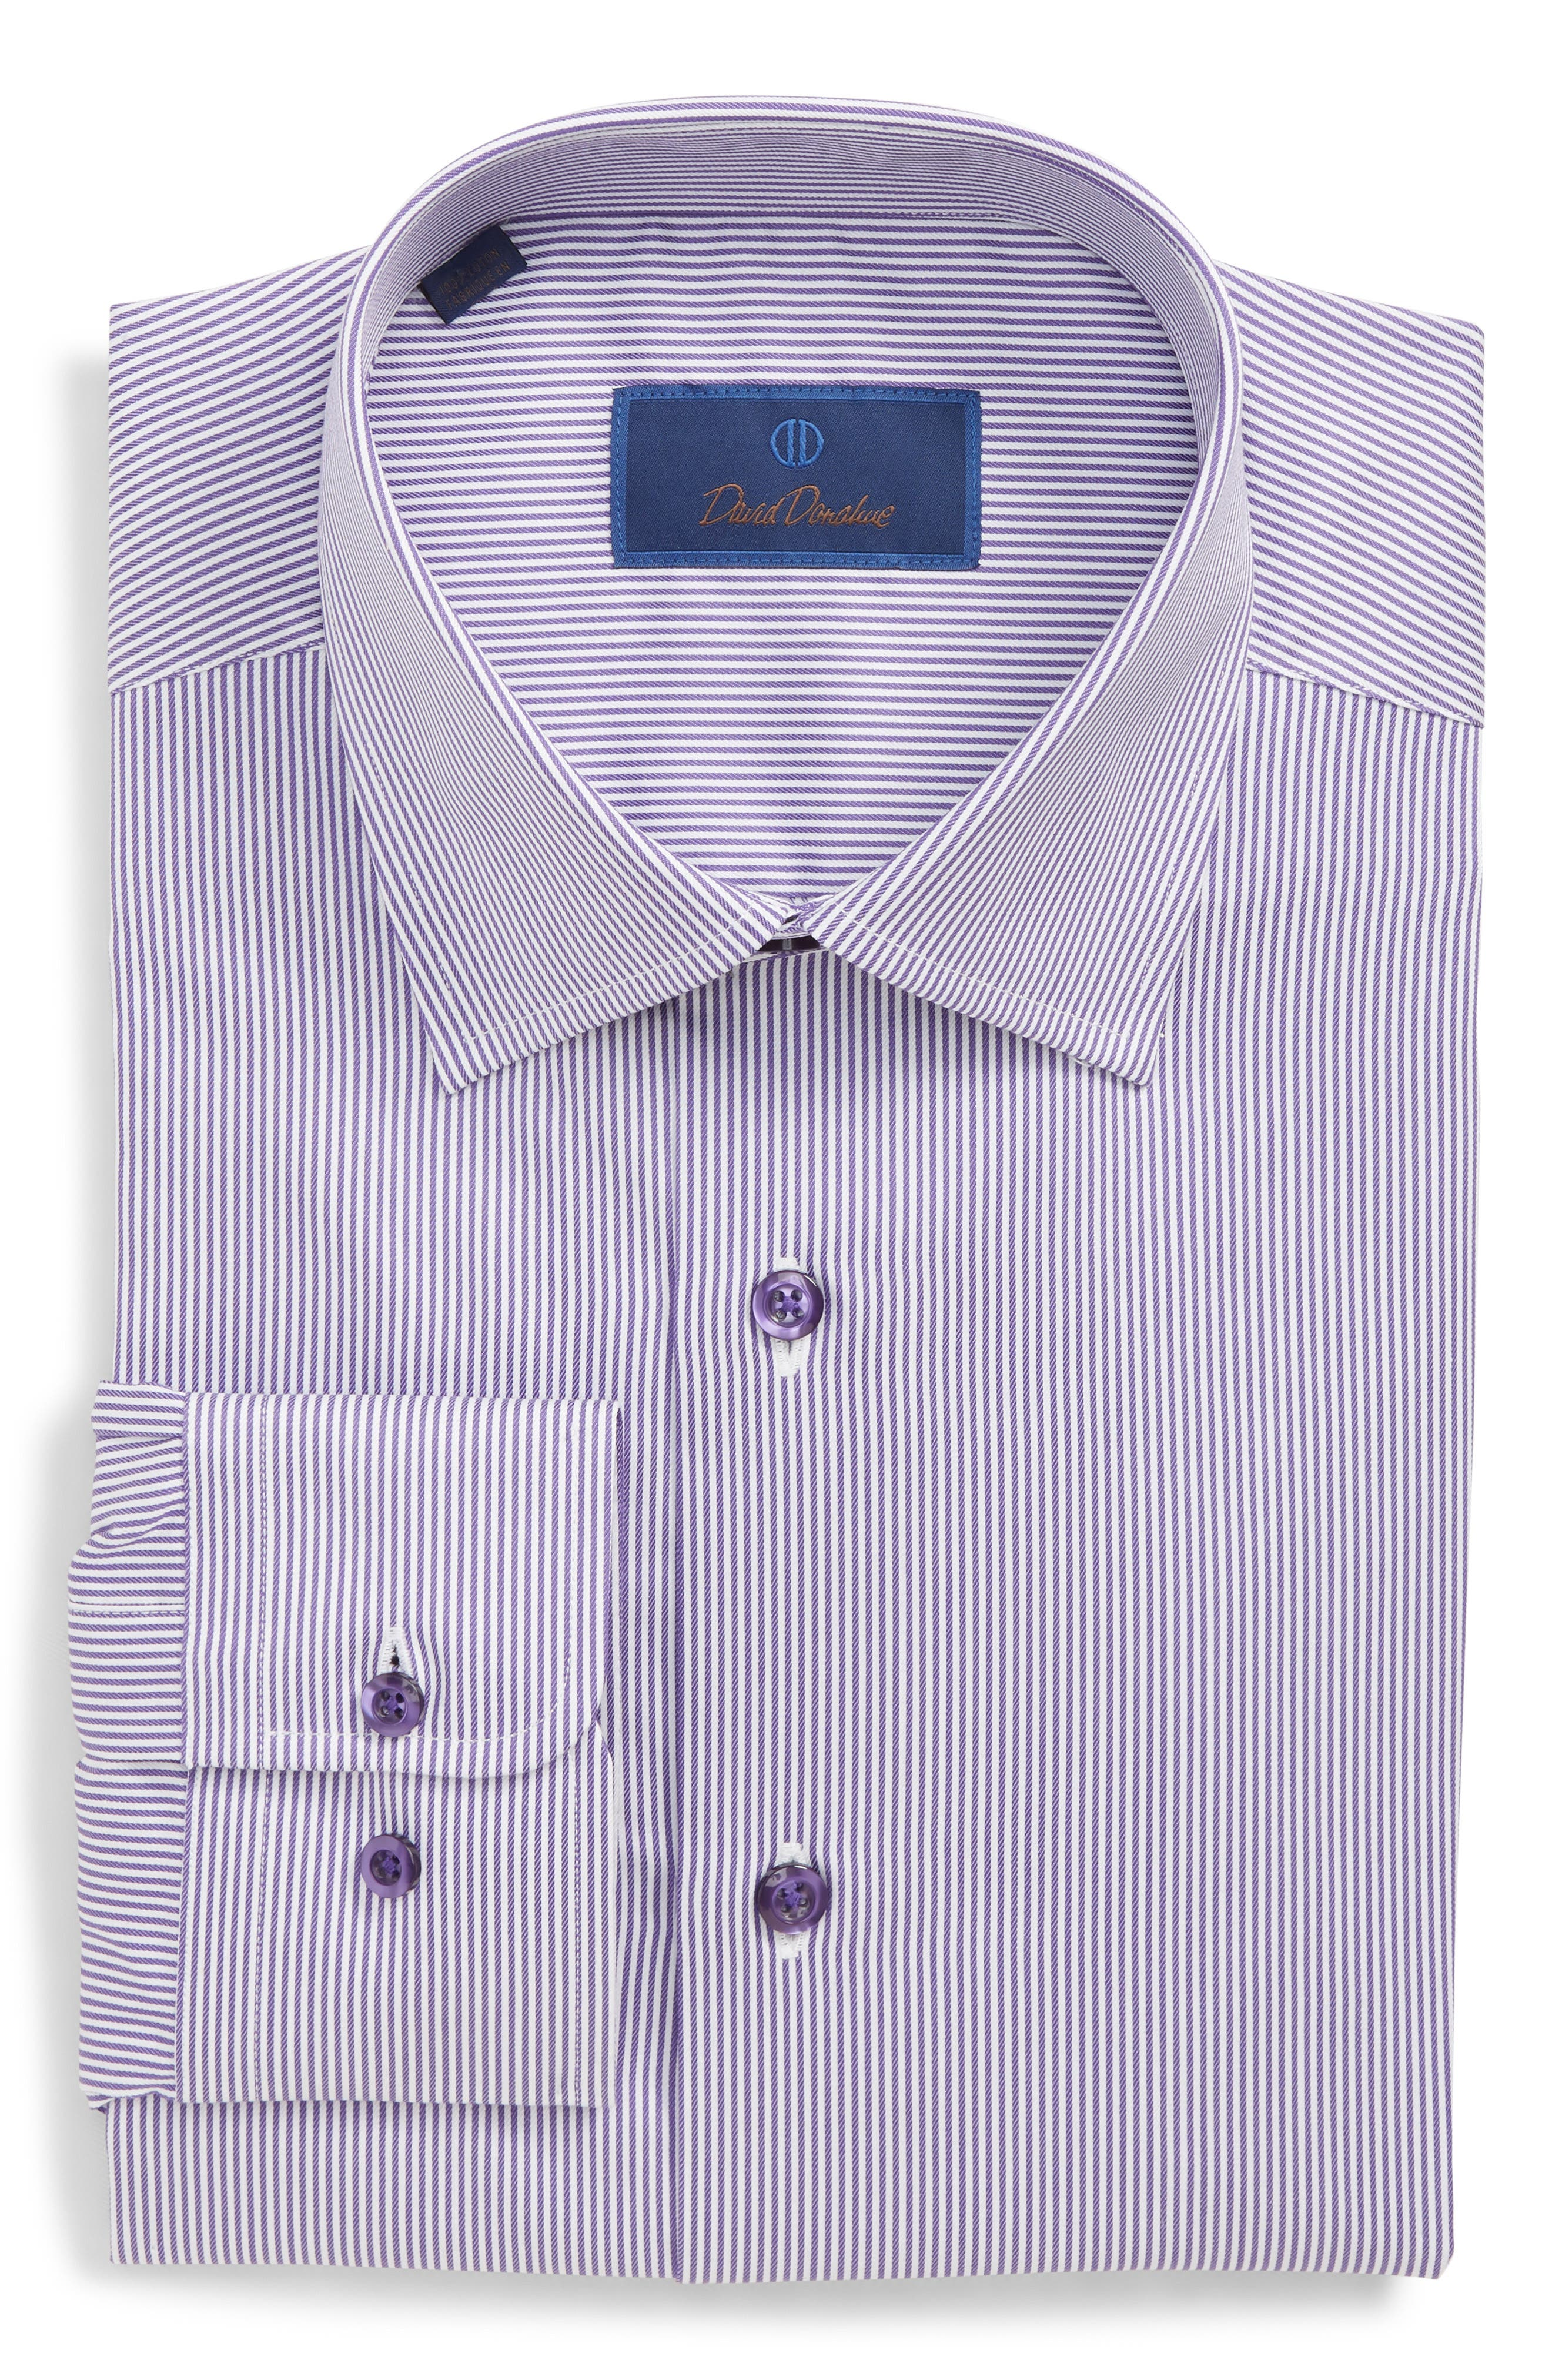 Regular Fit Stripe Dress Shirt, Main, color, 500